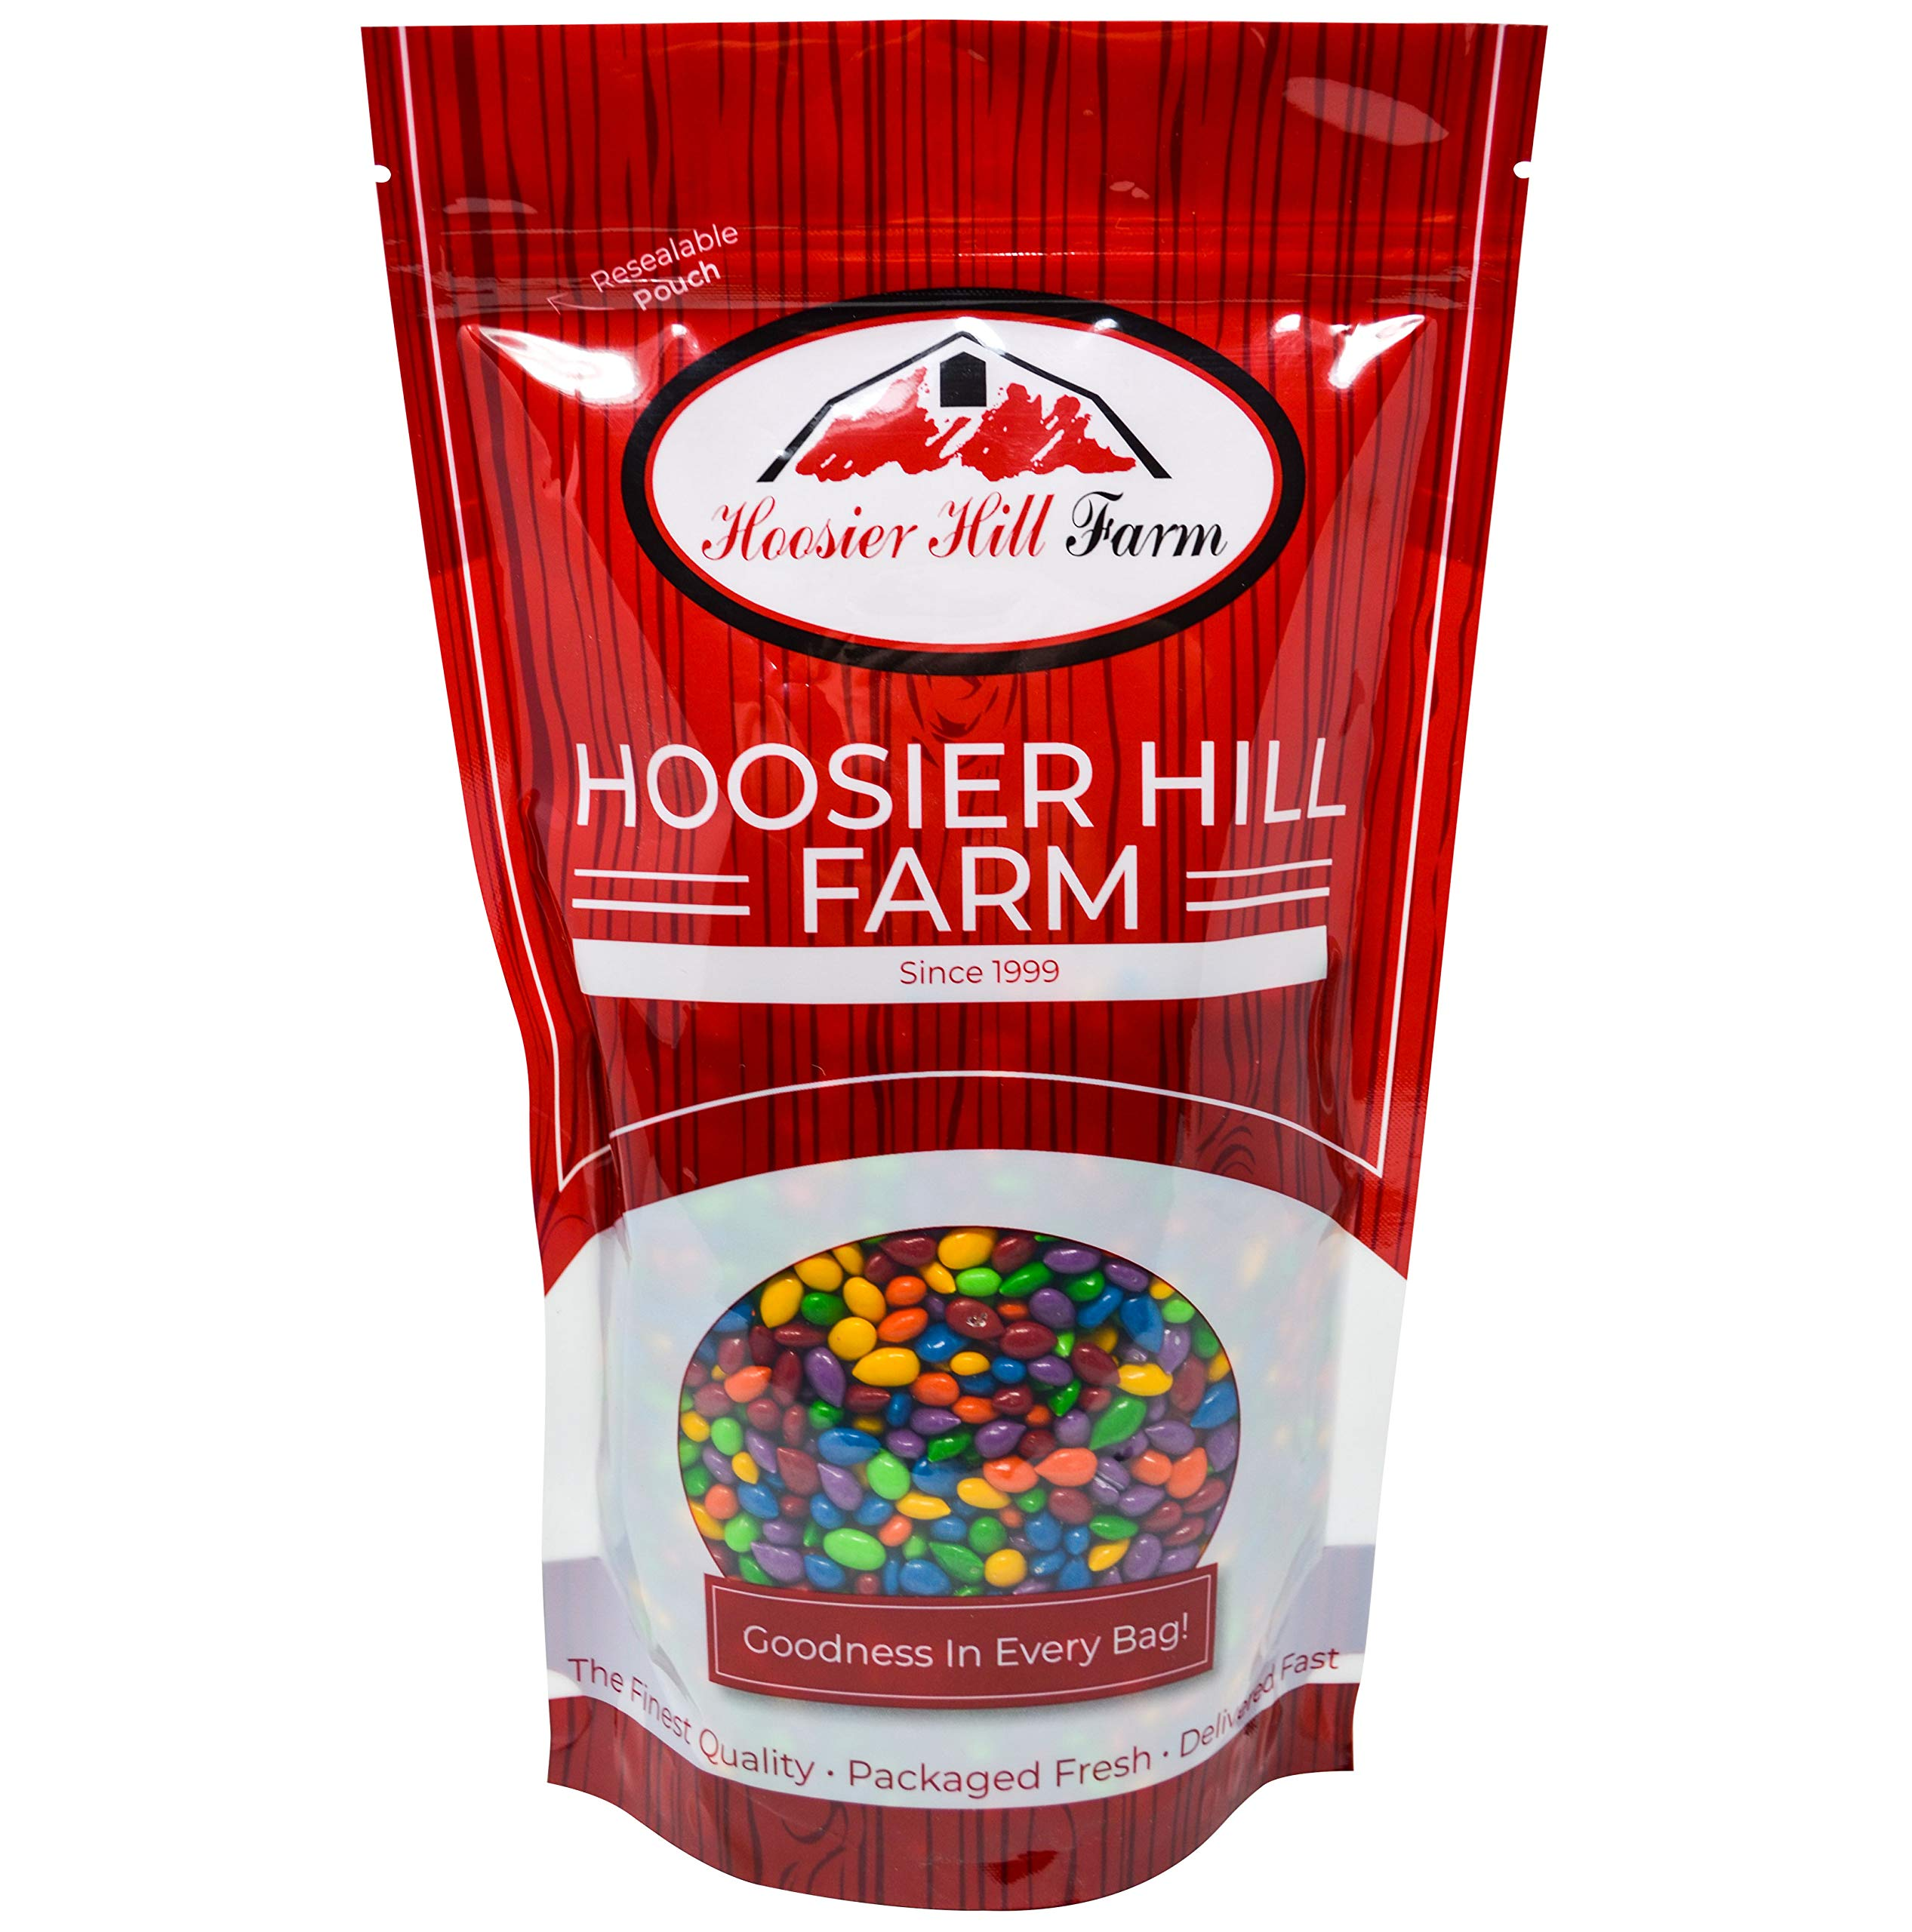 Hoosier Hill Farm Rainbow Seeds, Chocolate Covered & Candy Coated Sunflower Seeds, 5 Lb